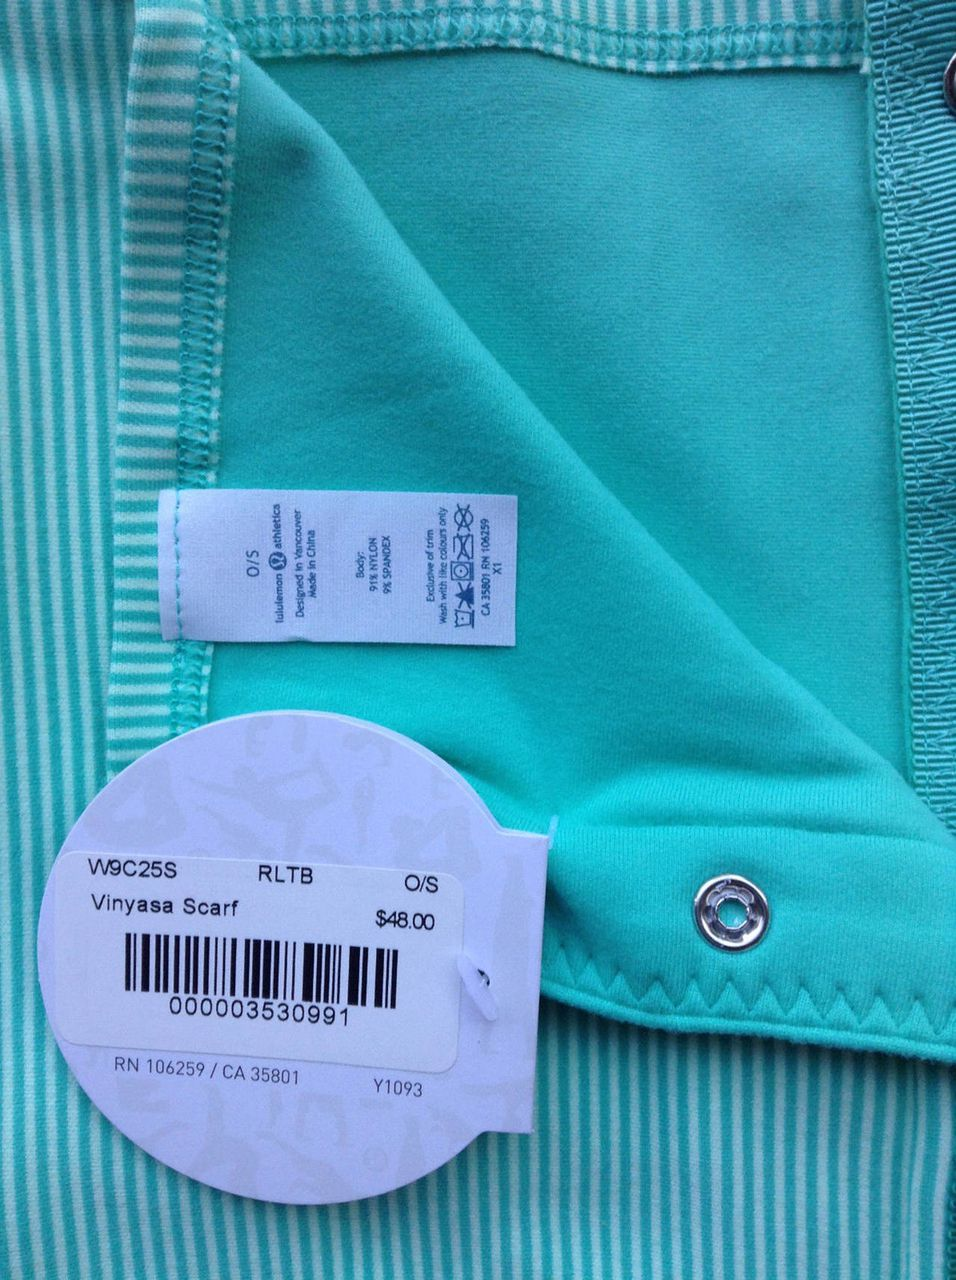 Lululemon Vinyasa Scarf *Rulu - Bali Breeze / Tonka Stripe Bali Breeze Fresh Teal